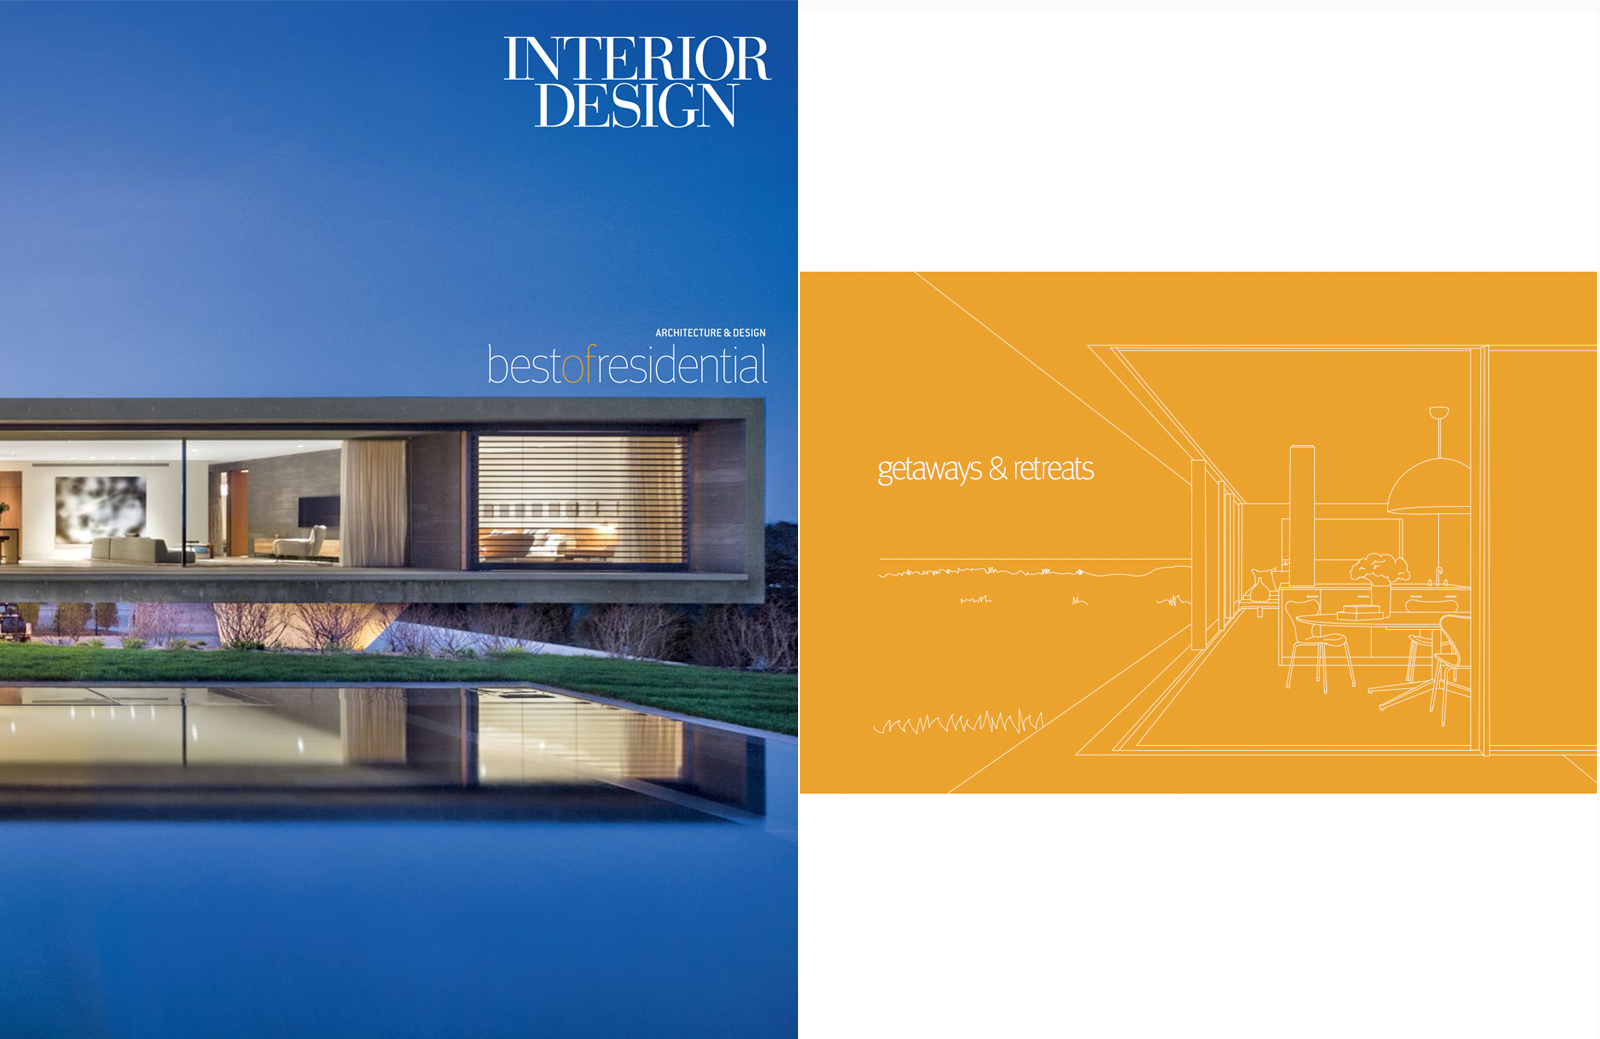 Interior Design Architecture And Book Best Of Residential Vol 2 March 2017